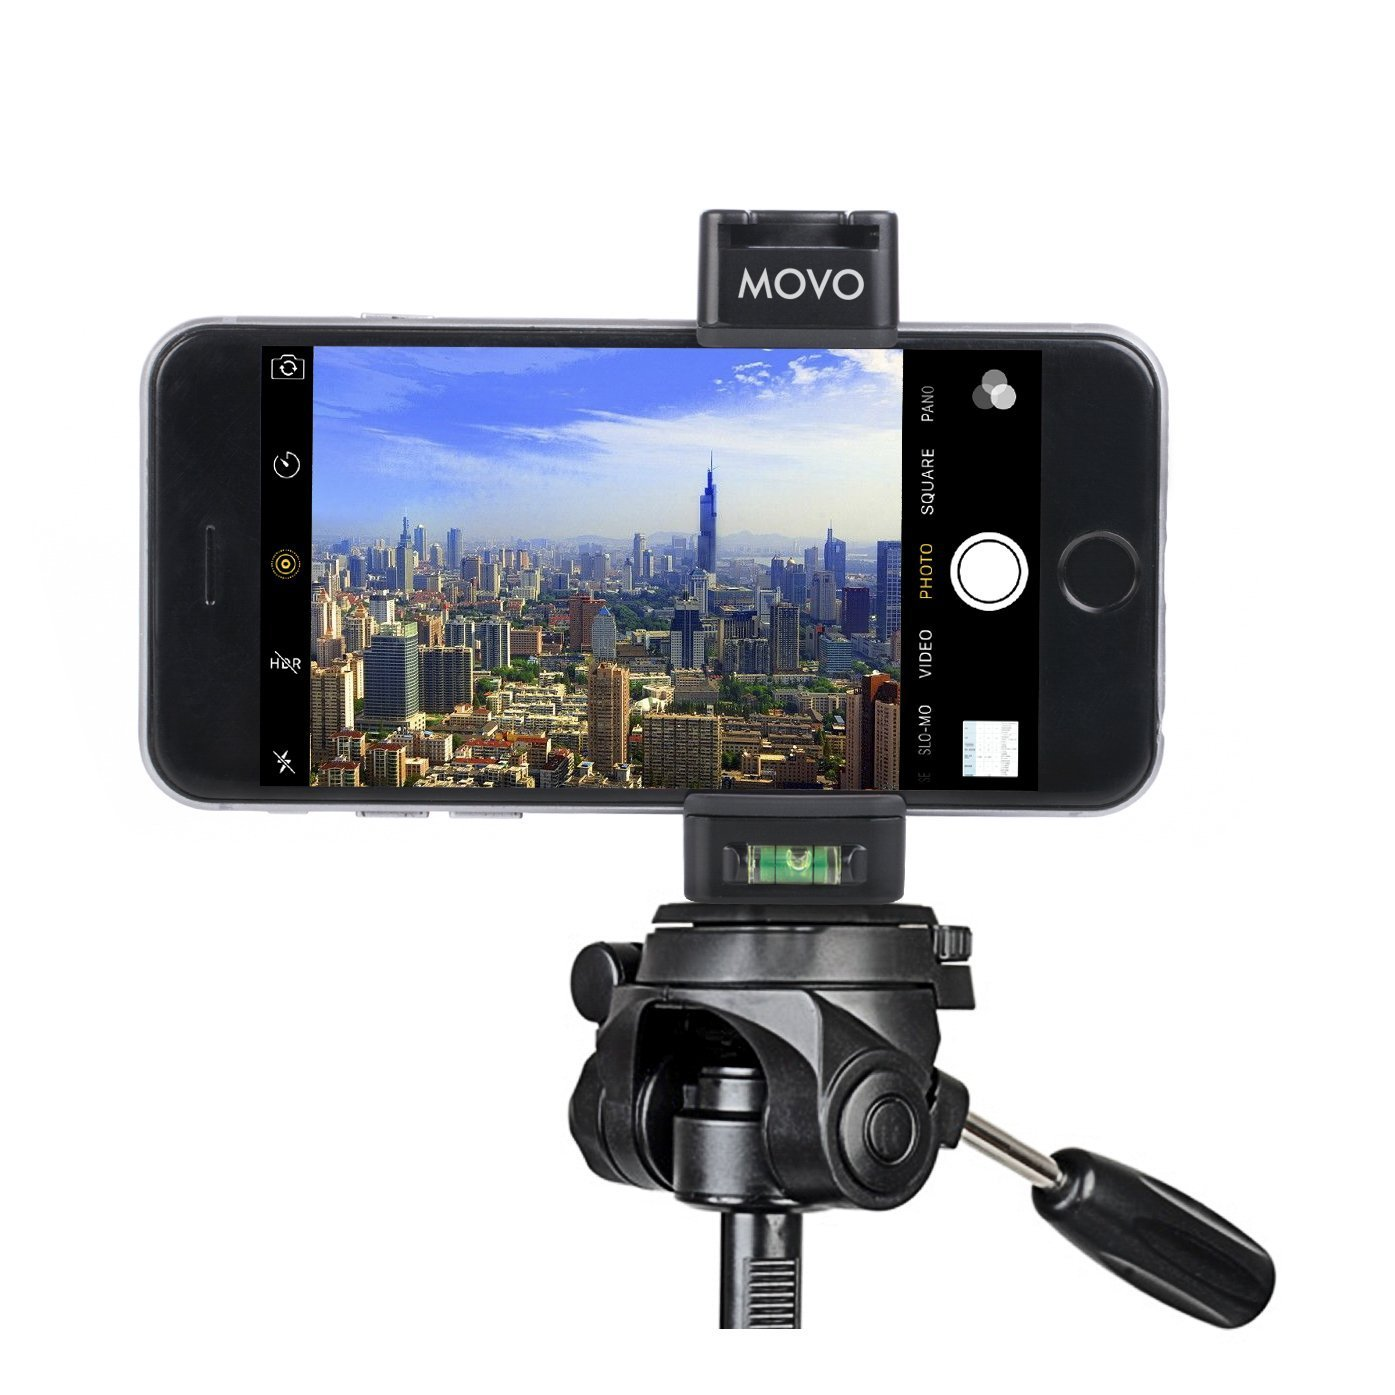 Movo Smartphone Shotgun Microphone, Video Grip Rig, & LED Light Bundle for iPhone X, 8, 7, 7 Plus, 6S, 6, 5, 5S, Samsung Galaxy / Note, & Android Phones by Movo (Image #6)